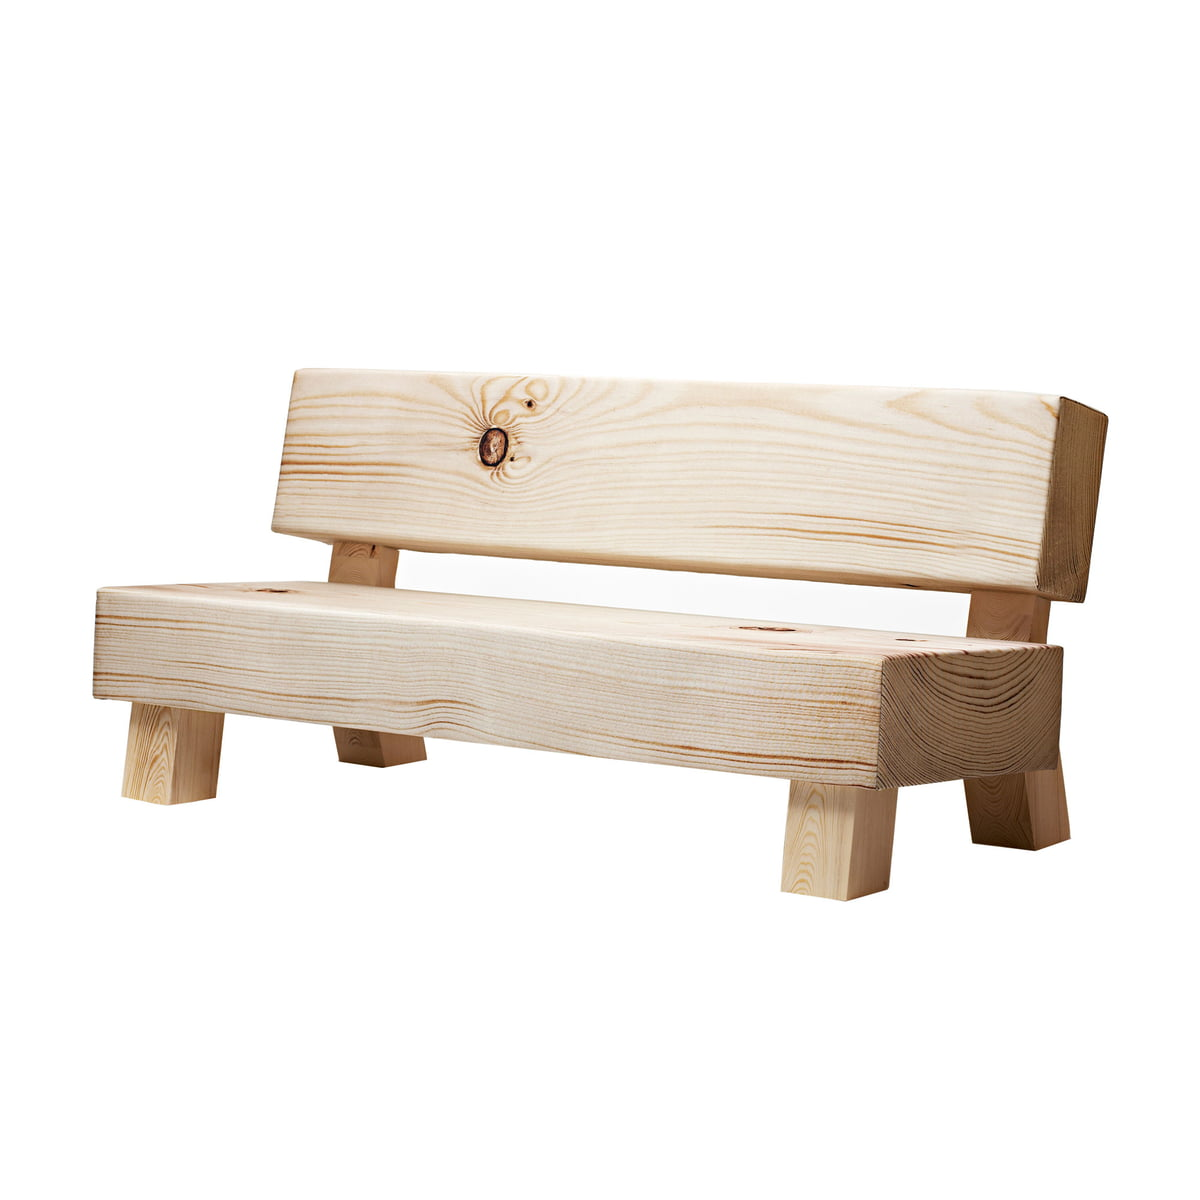 Outdoor wood sofa - Soft Wood Couch